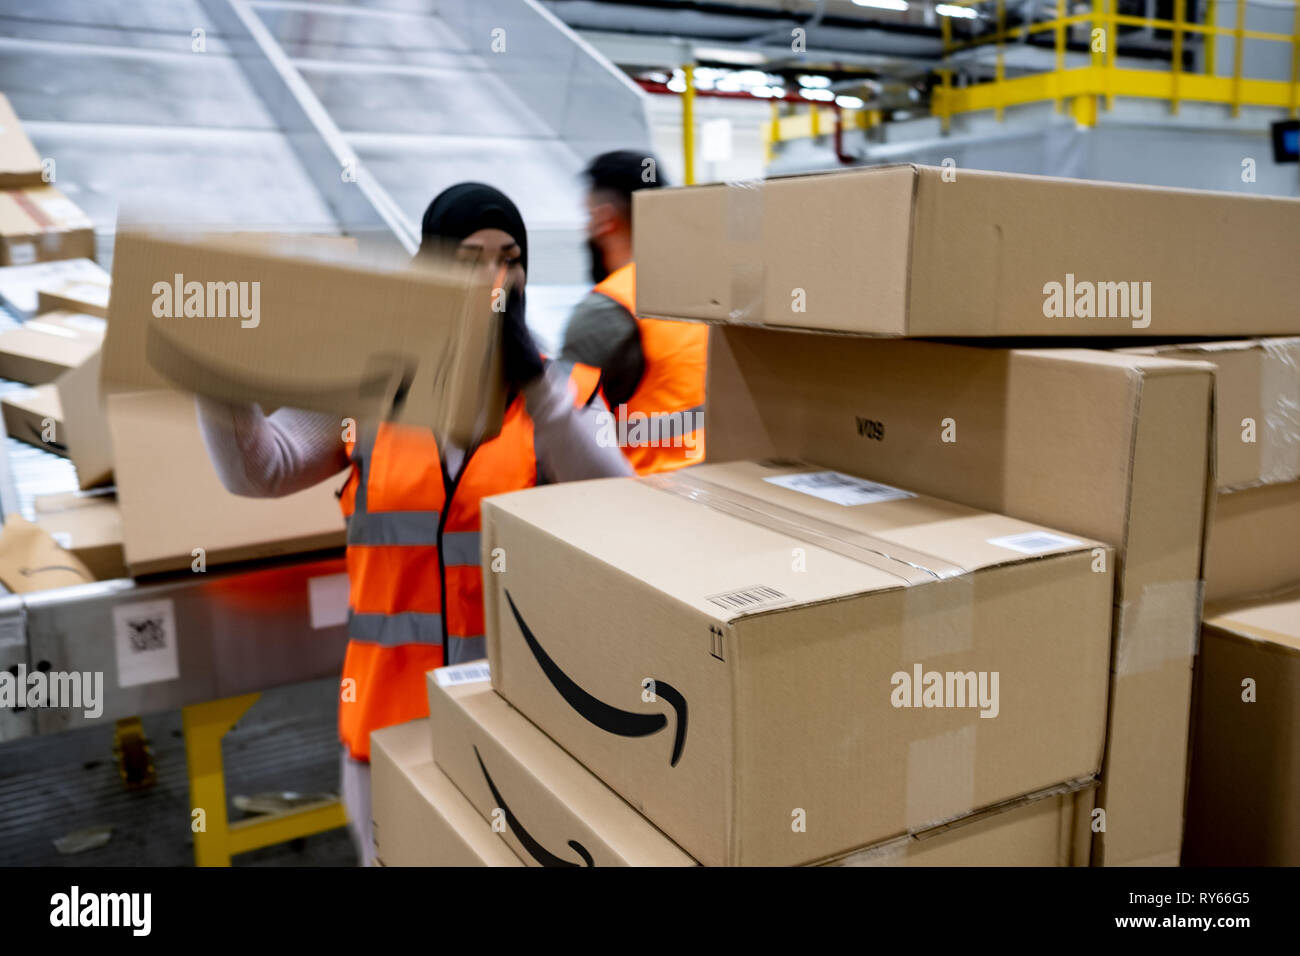 Amazon delivery jobs near me